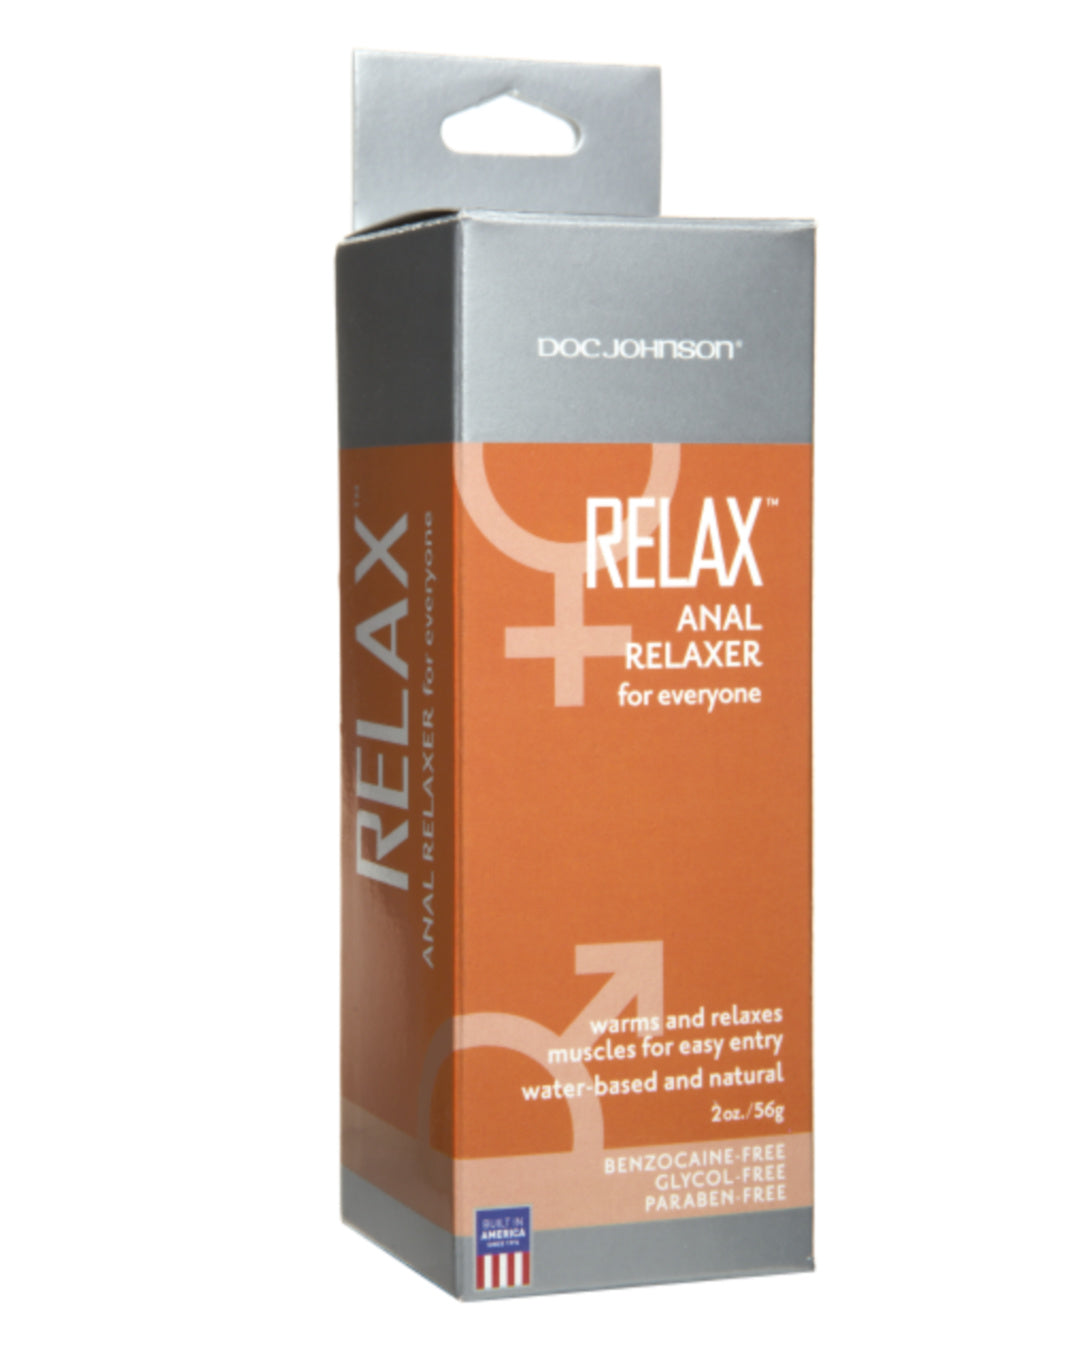 Relax Anal Relaxer Lubricant by Doc Johnson 2 oz box